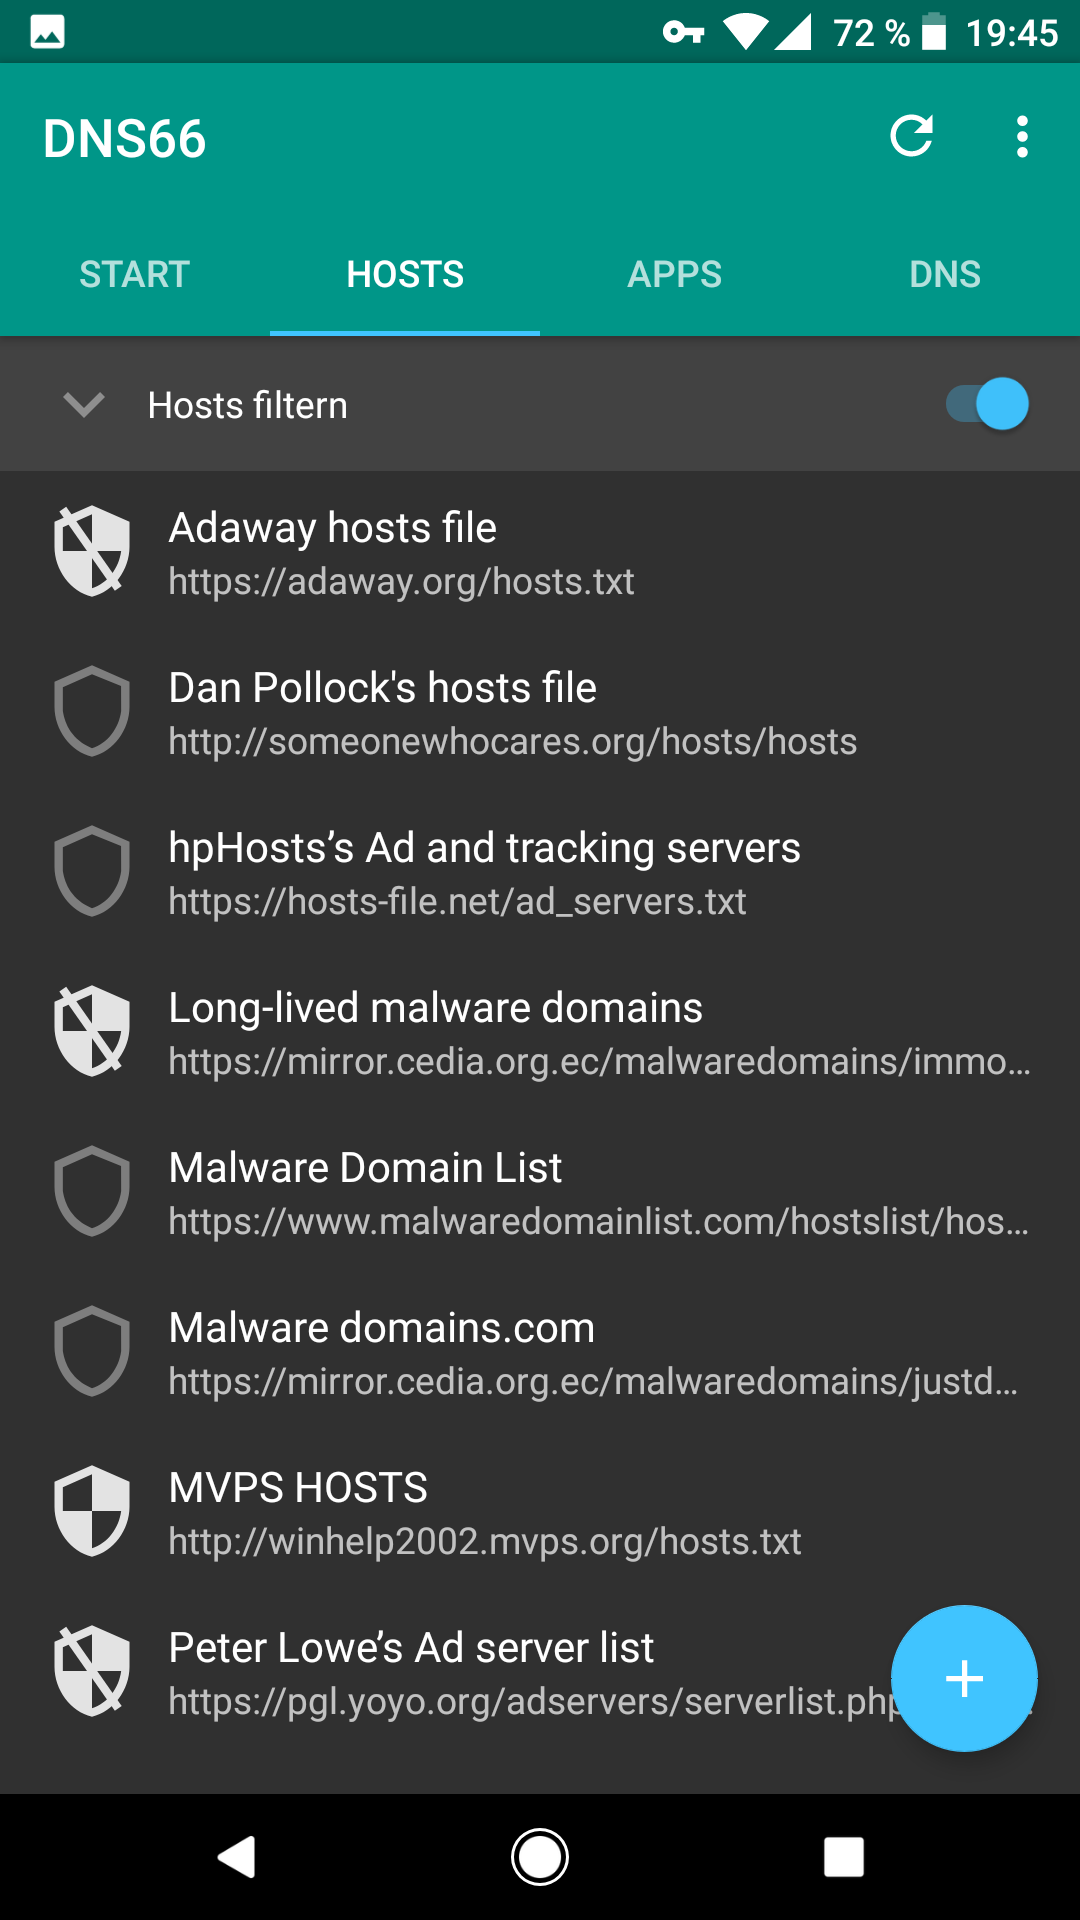 Android - Any reliable ad blockers for Android without root